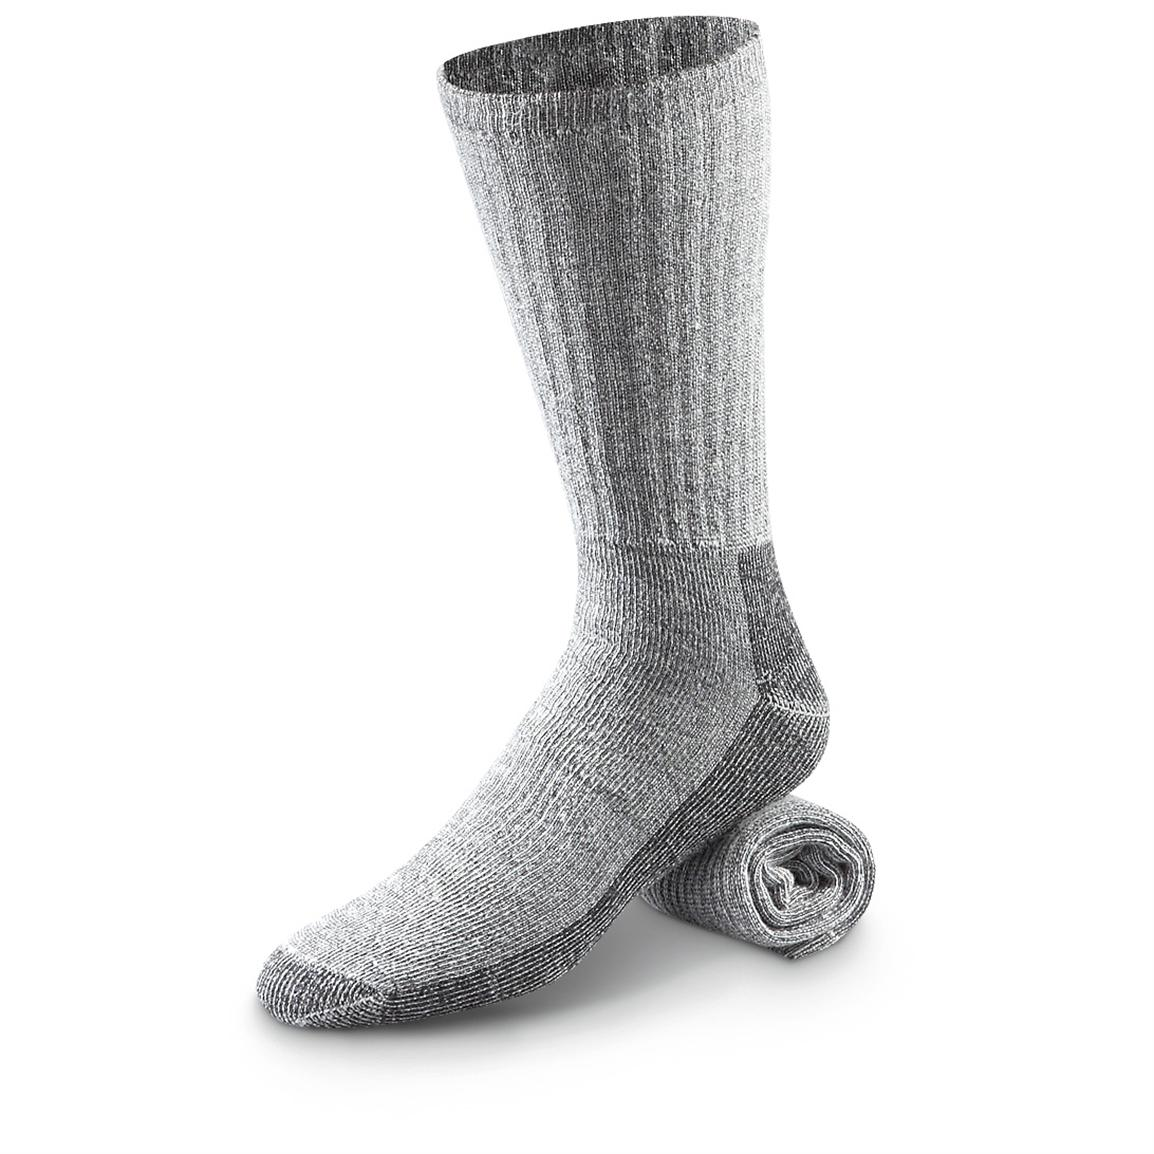 6 Prs. of Woolrich® Mid-weight Wool Hiker Socks, Charcoal